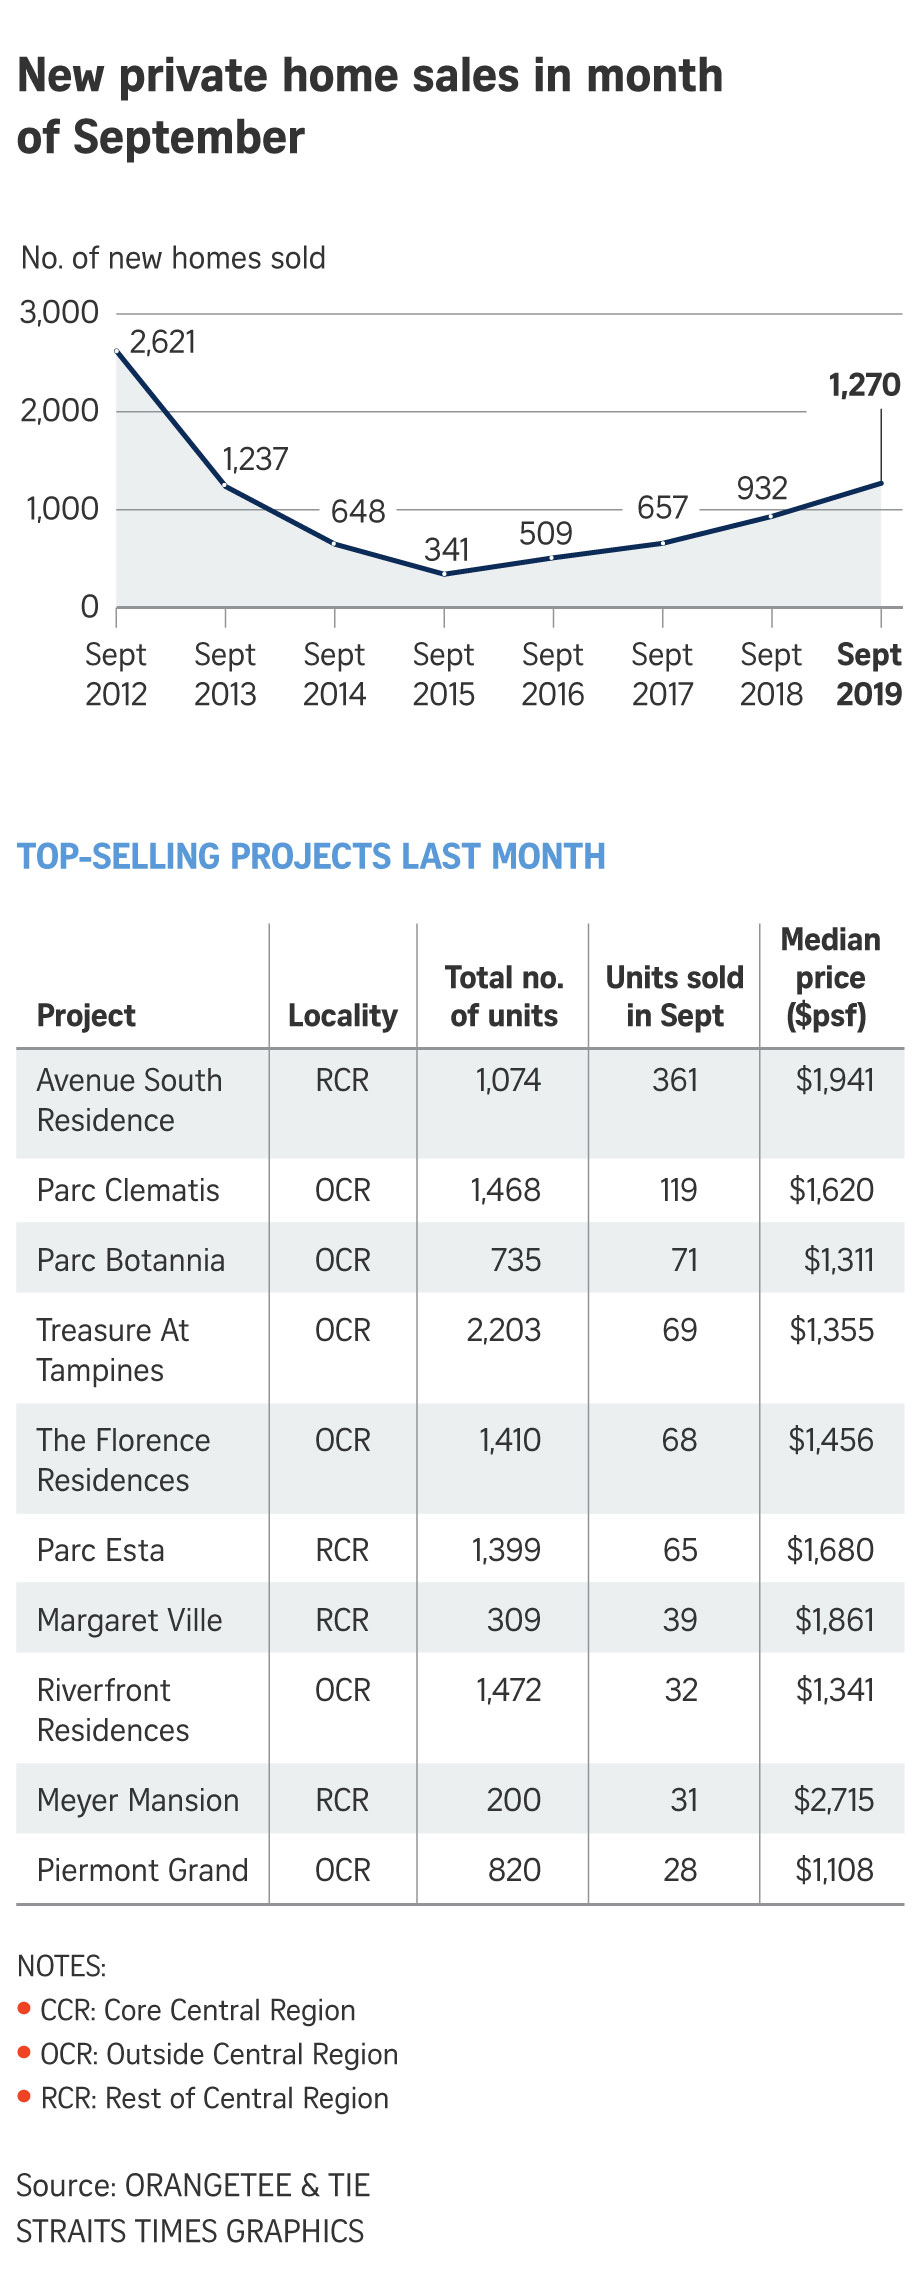 Parc Clematis condo in Clementi one of the top selling new condo in Sep